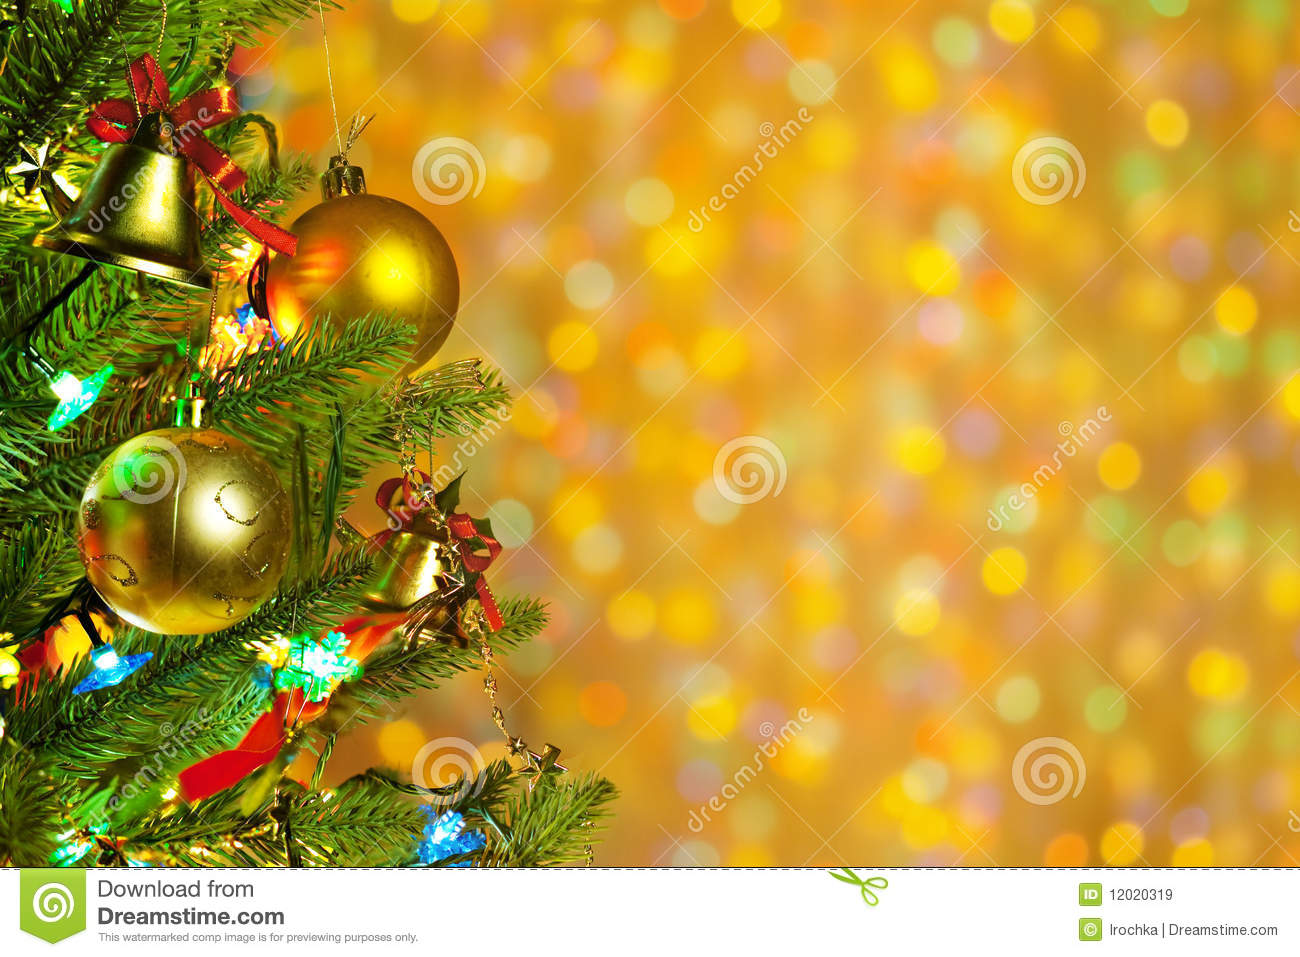 Christmas fir tree with colorful lights close up